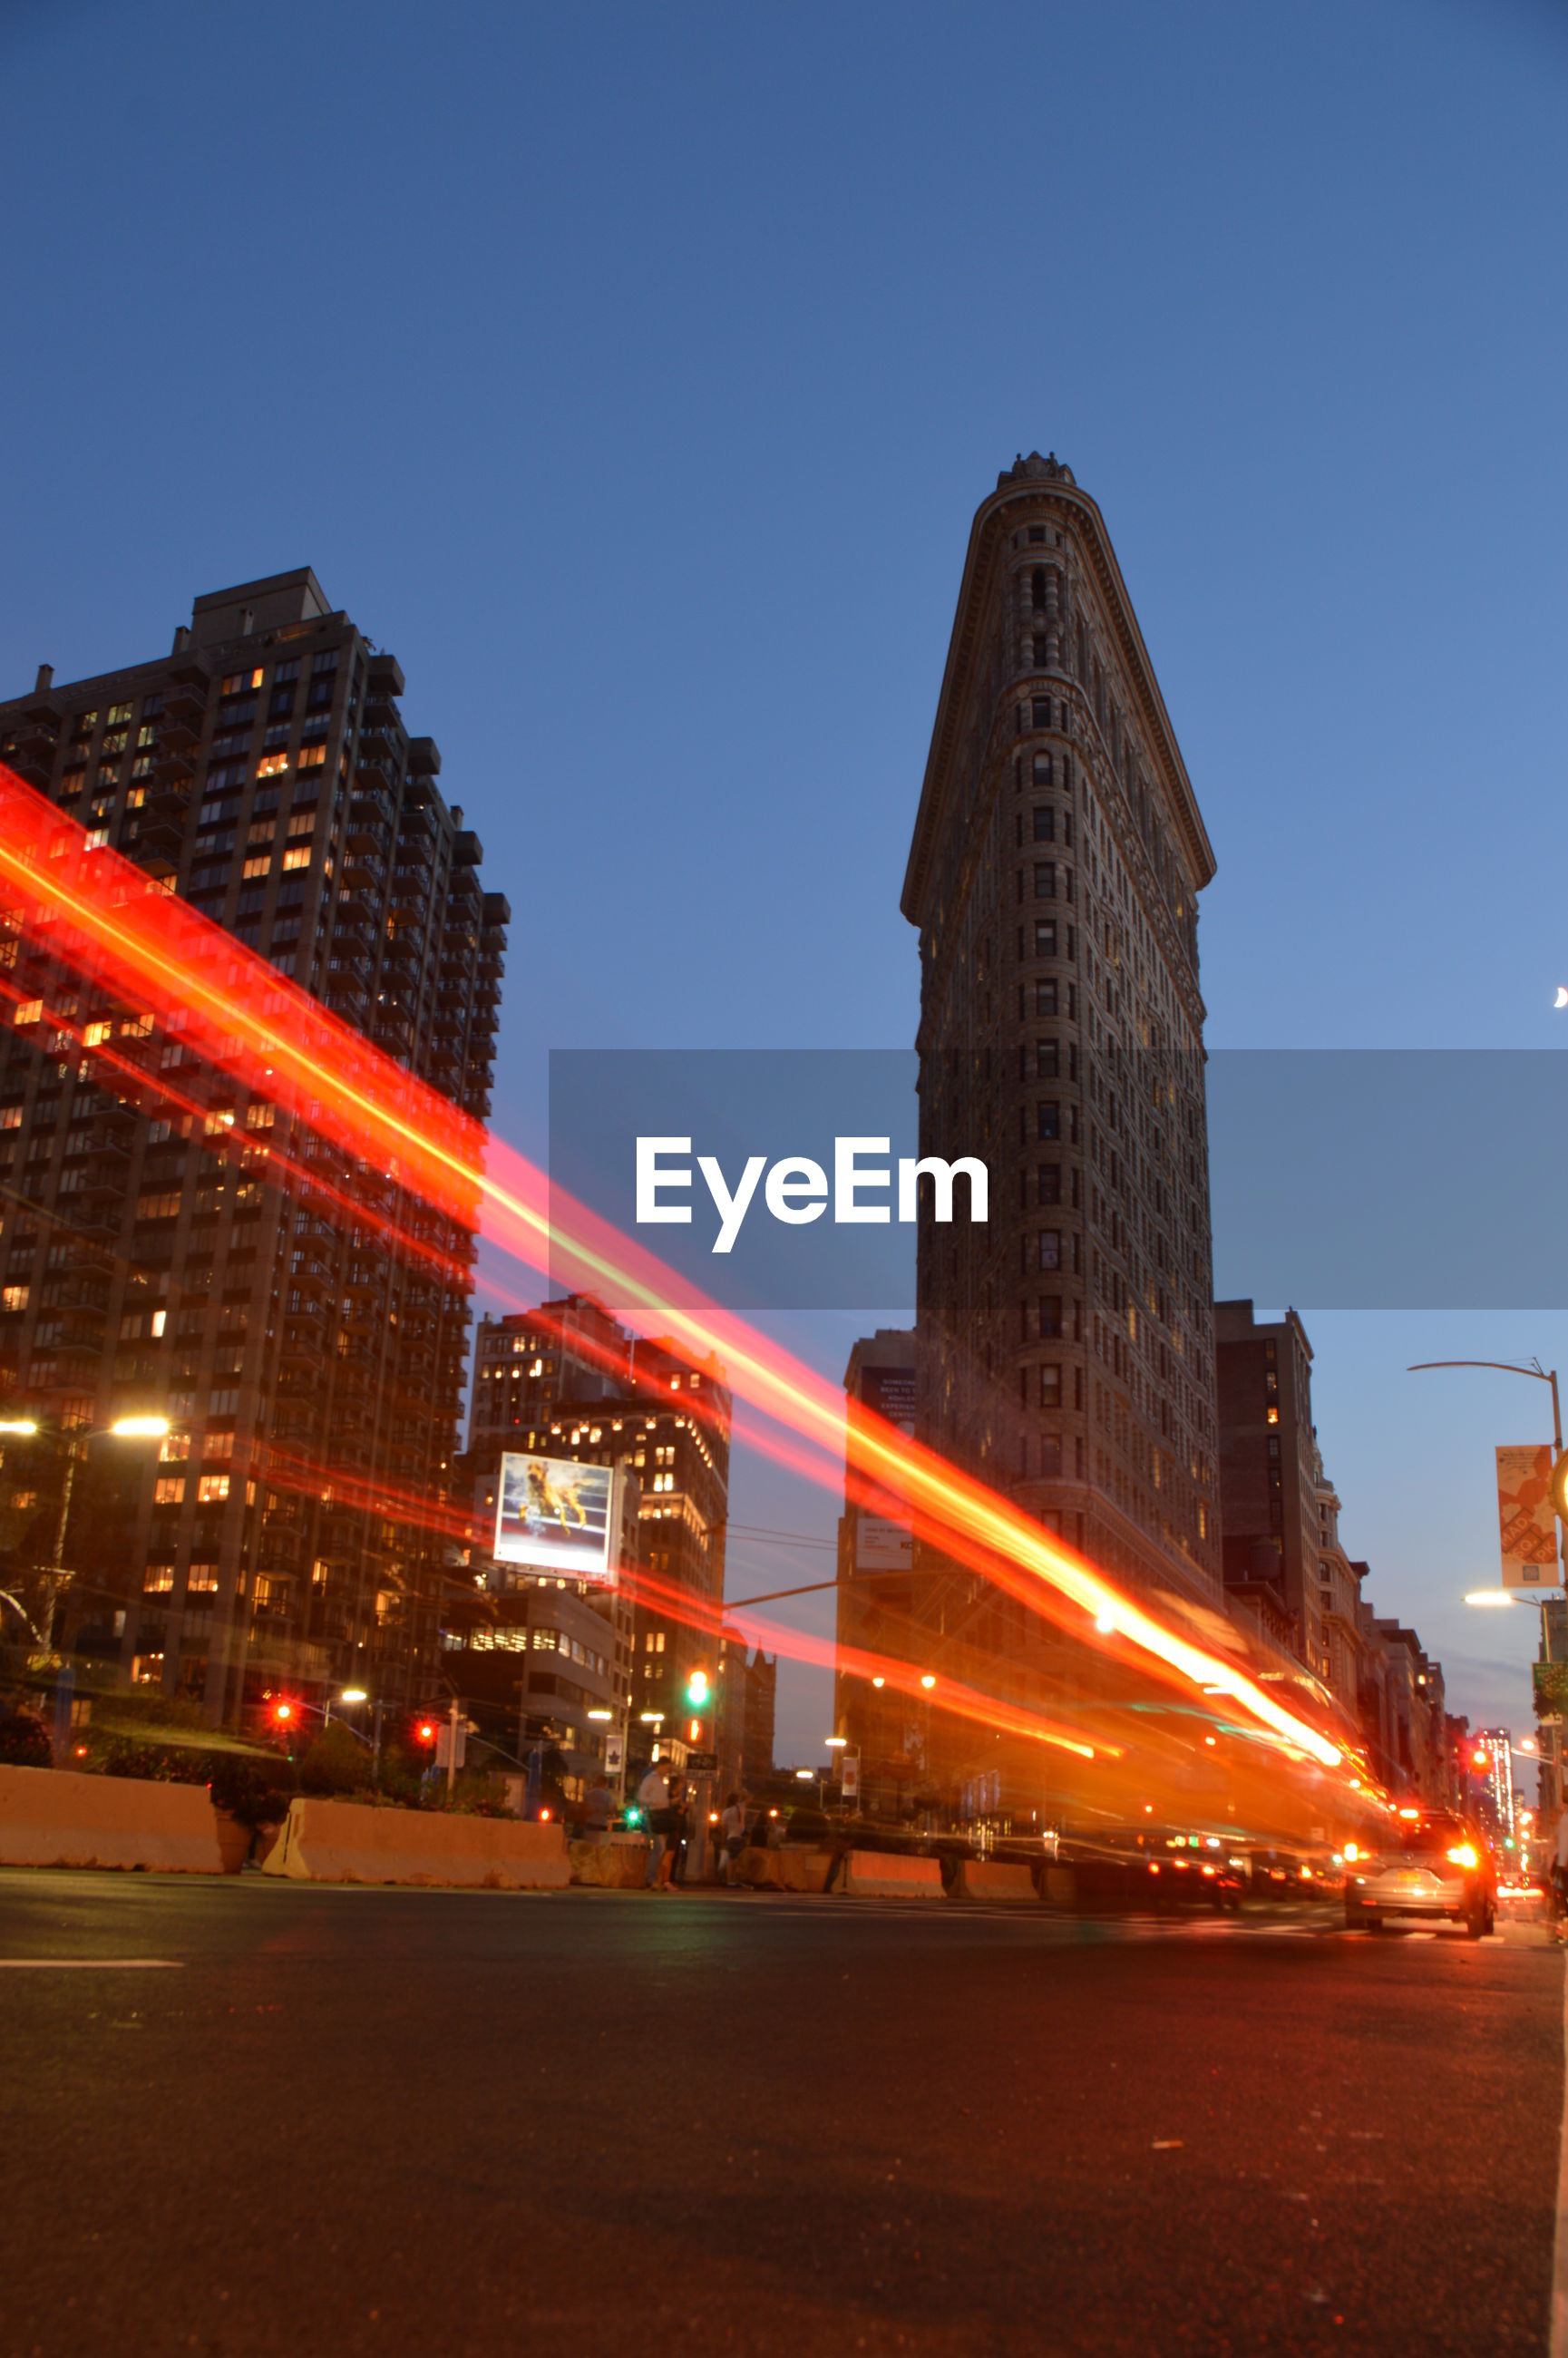 Light trails on city street by flatiron building at night in new york city.